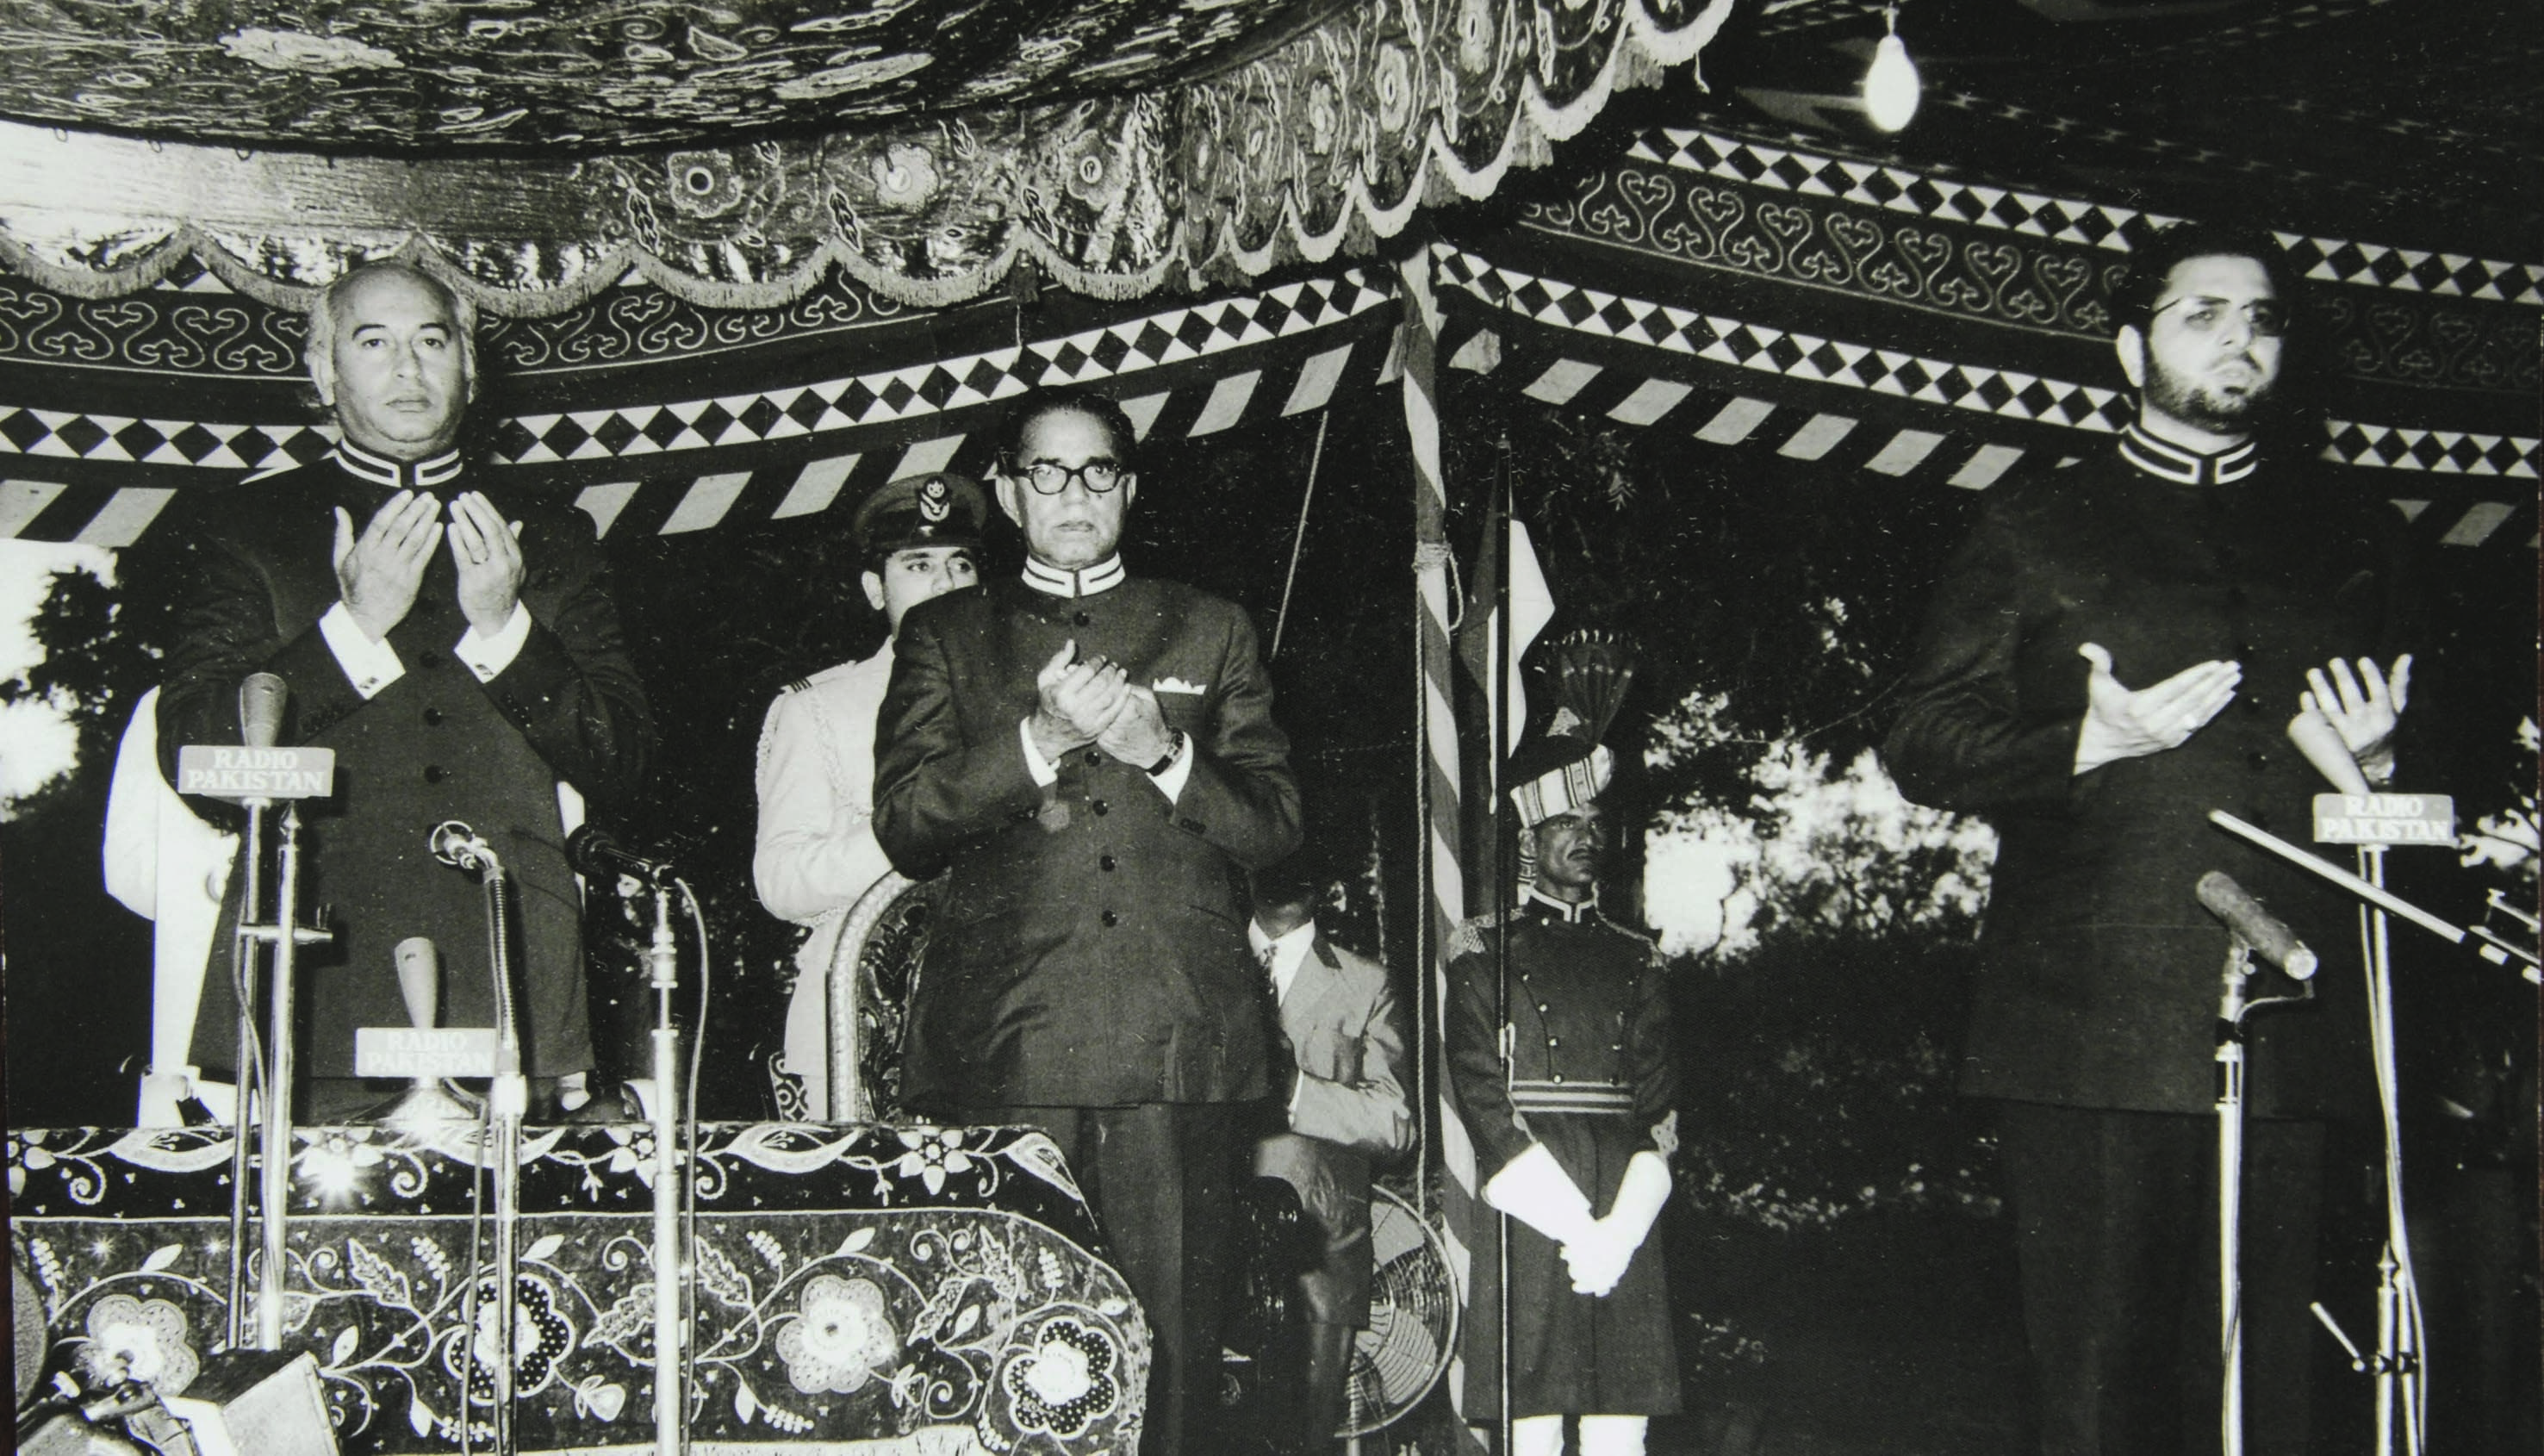 Maulana Kausar Niazi (extreme right) leading the prayers at a ceremony to mark the authentication of the Constitution on April 12, 1973. On the left is President Zulfikar Ali Bhutto standing beside Fazal Elahi Chaudhry, who at the time was the Speaker of the National Assembly and later became President of Pakistan on August 14, 1973, when Bhutto took oath of the office of the prime minister. | Photo: National Assembly Archives